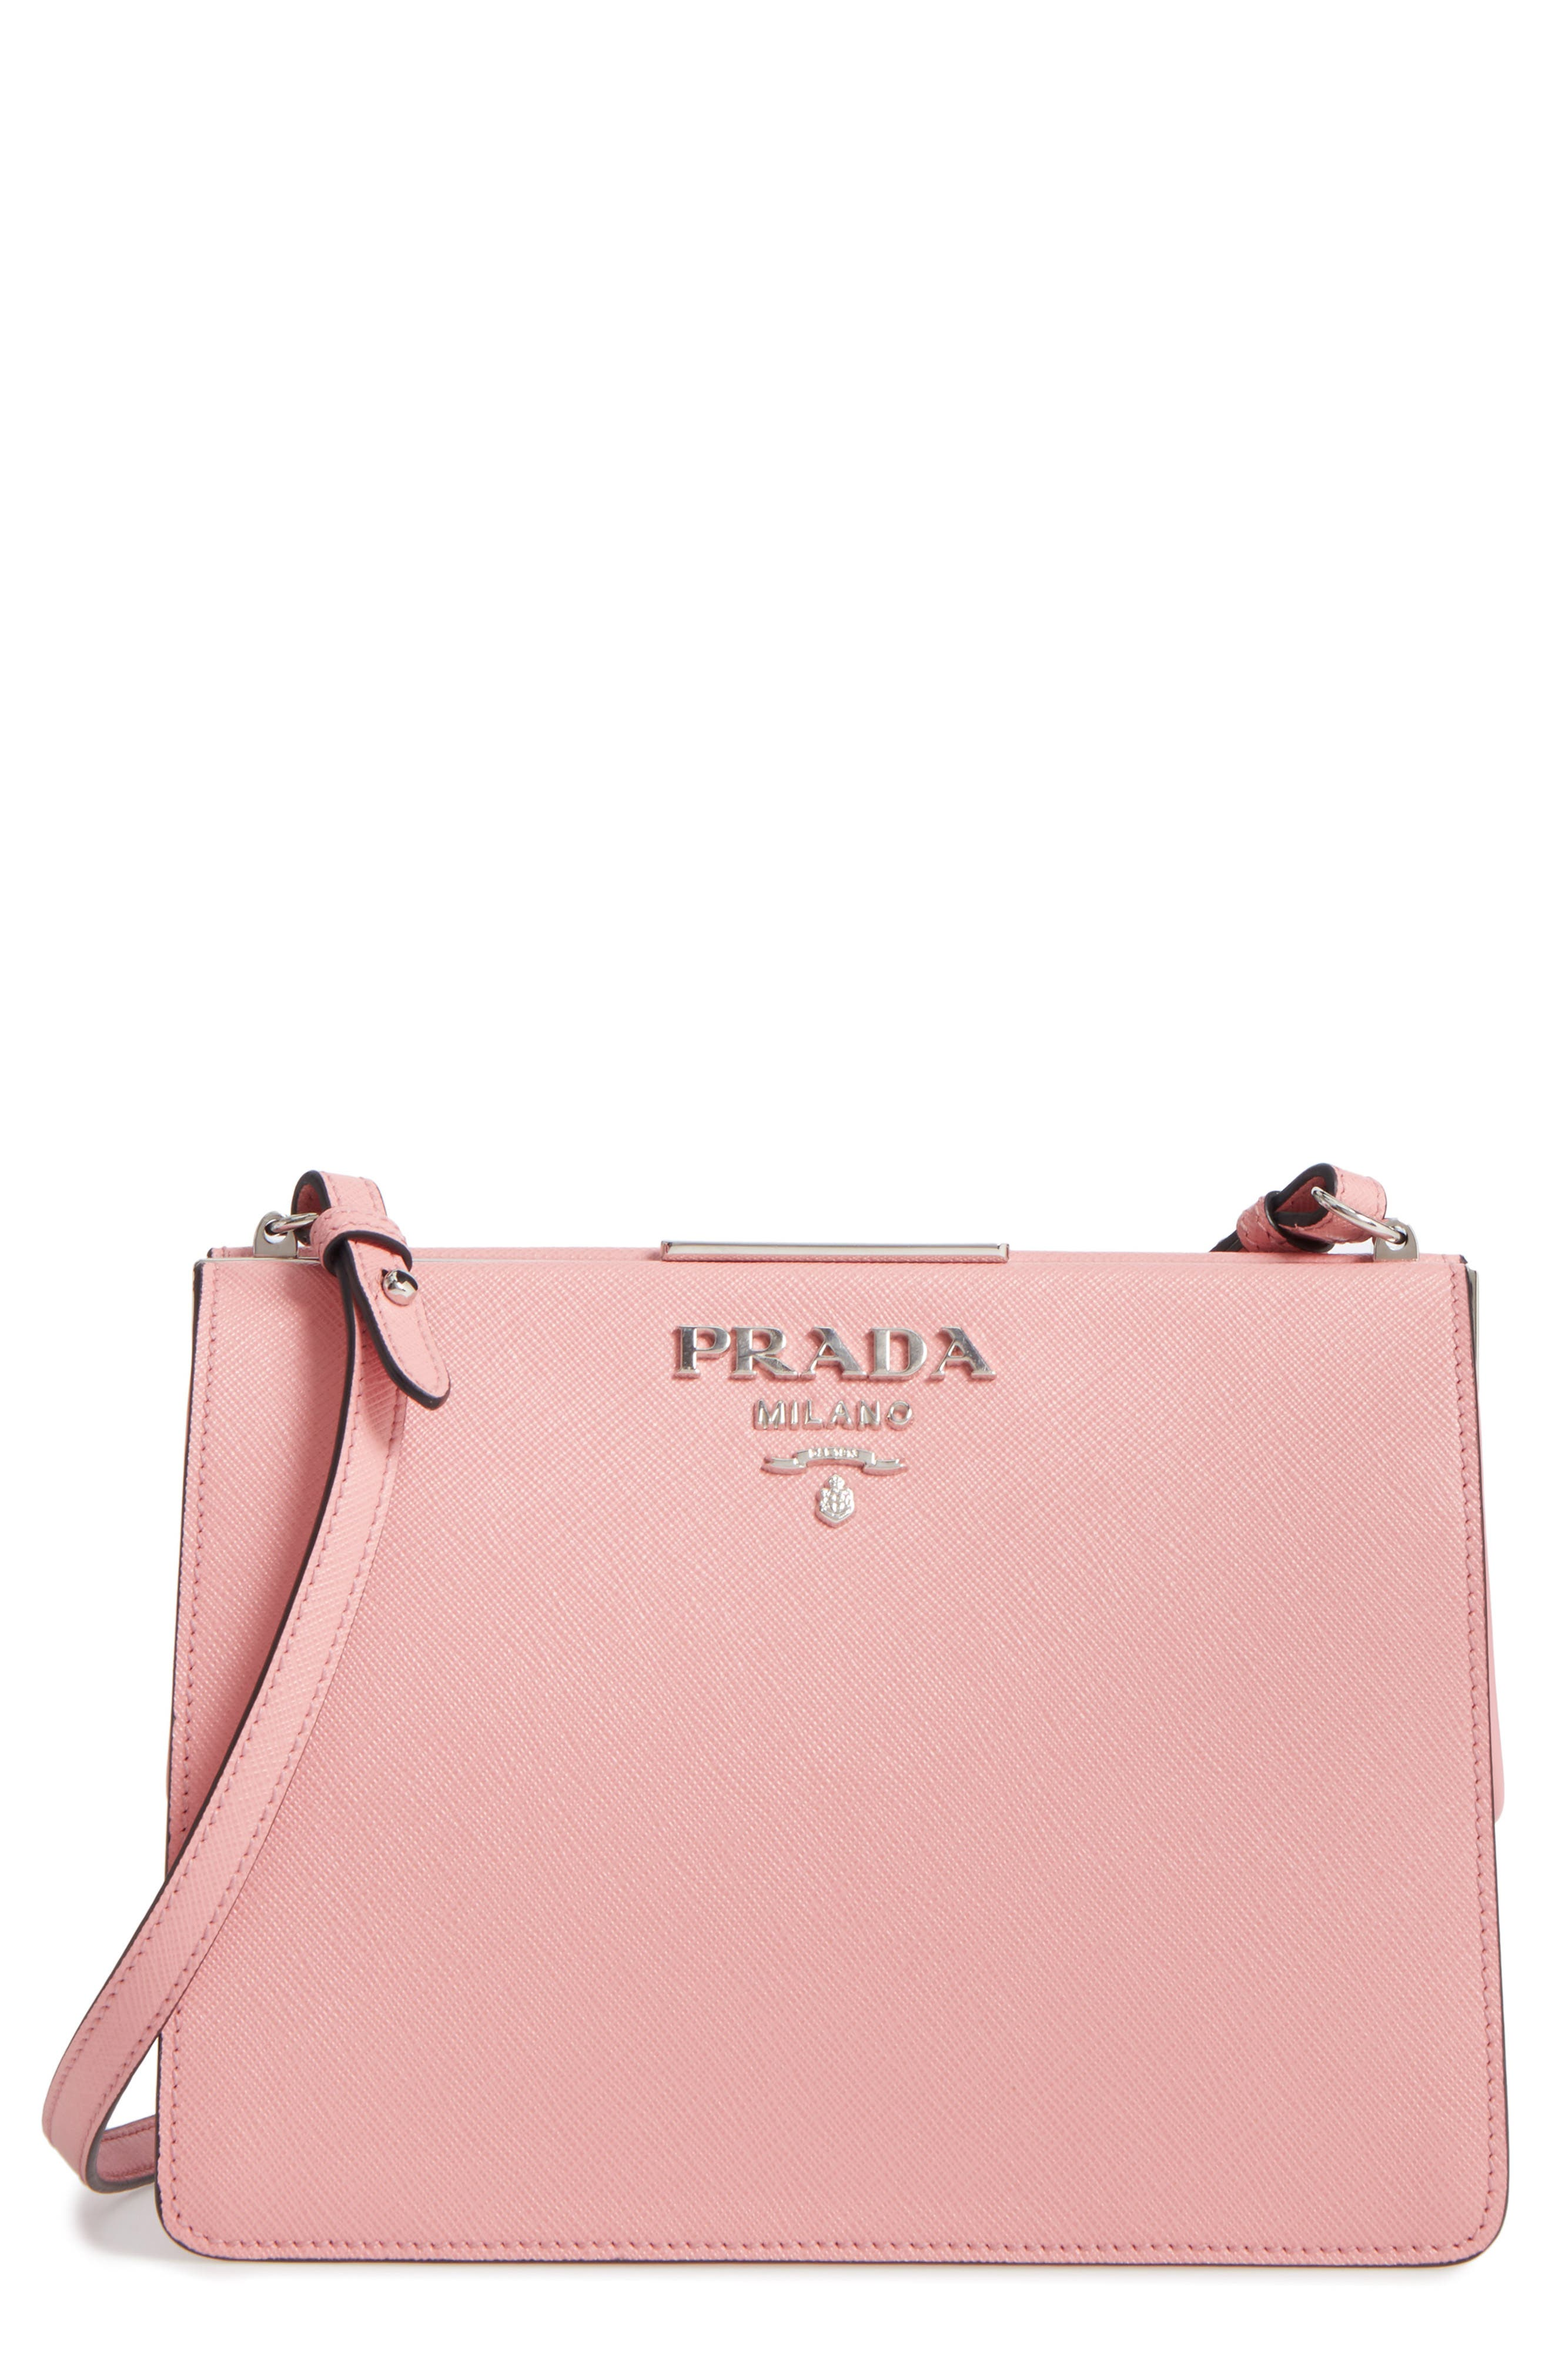 Prada Small Frame Saffiano & City Calfskin Leather Shoulder Bag